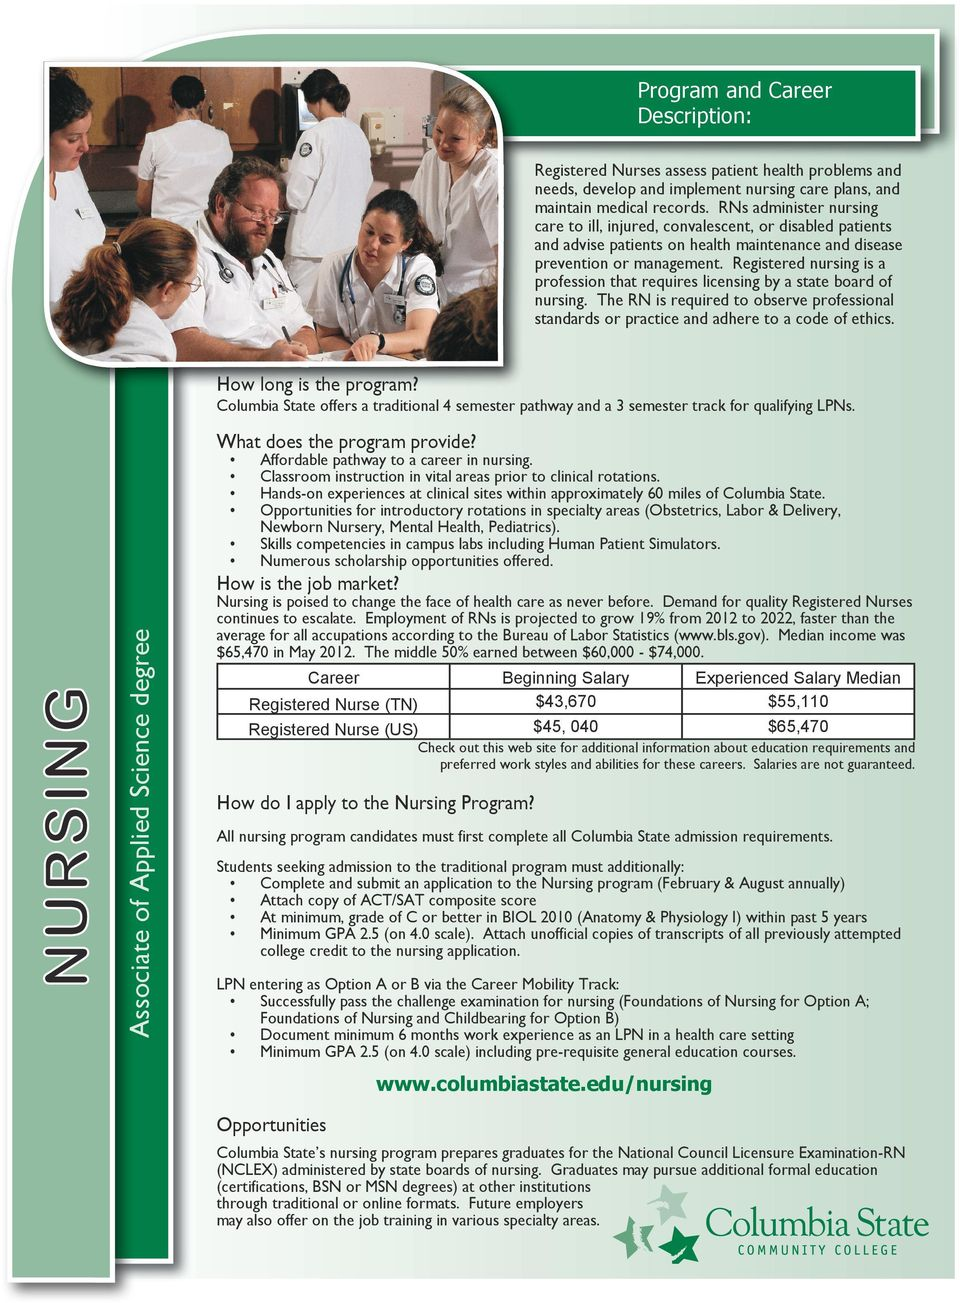 Registered nursing is a profession that requires licensing by a state board of nursing. The RN is required to observe professional standards or practice and adhere to a code of ethics.